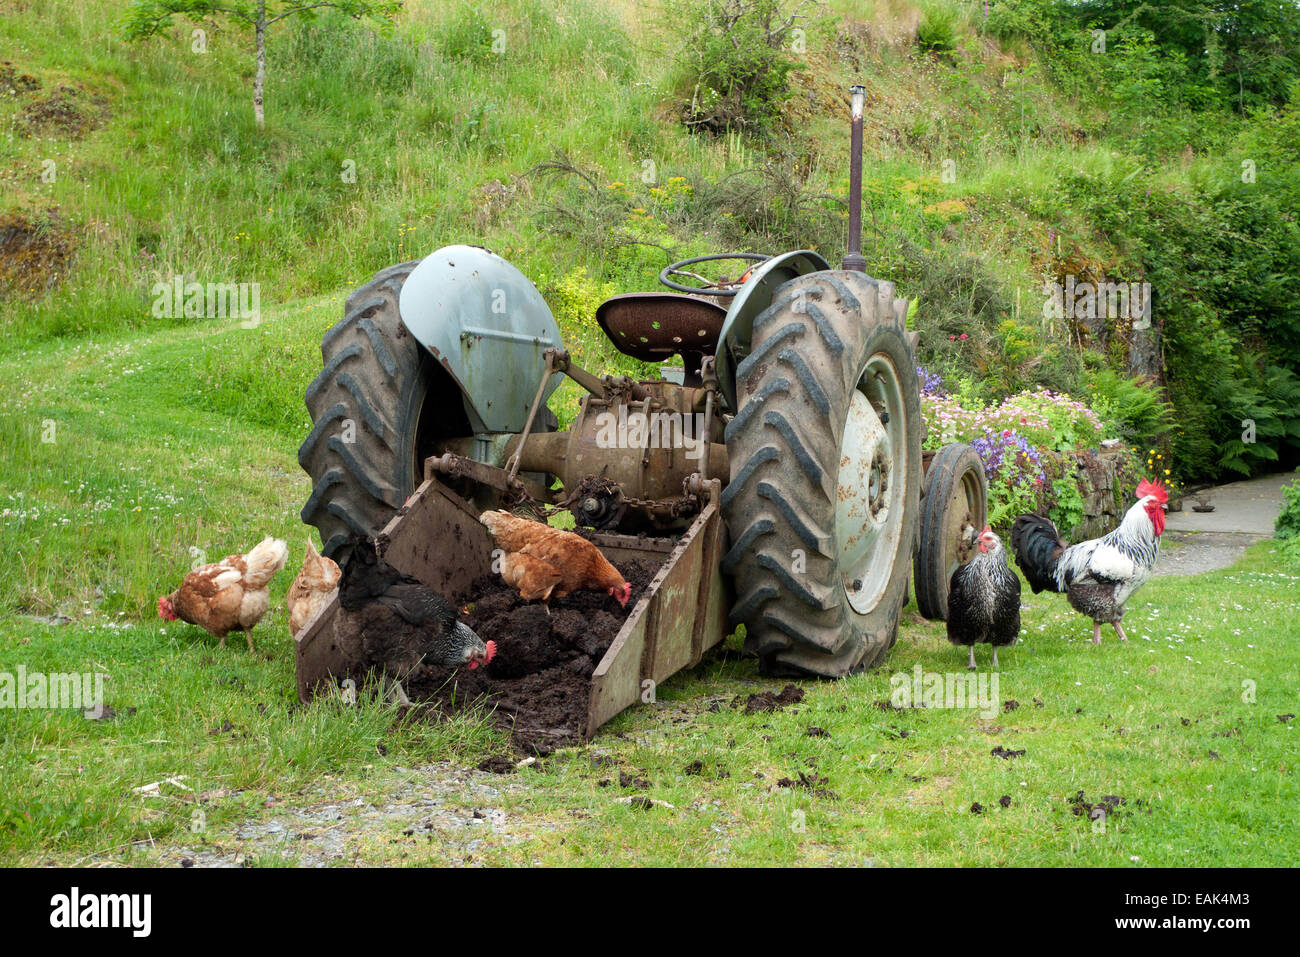 Free range chickens & rooster pecking at manure in bucket of a tractor on smallholding in Carmarthenshire Wales - Stock Image